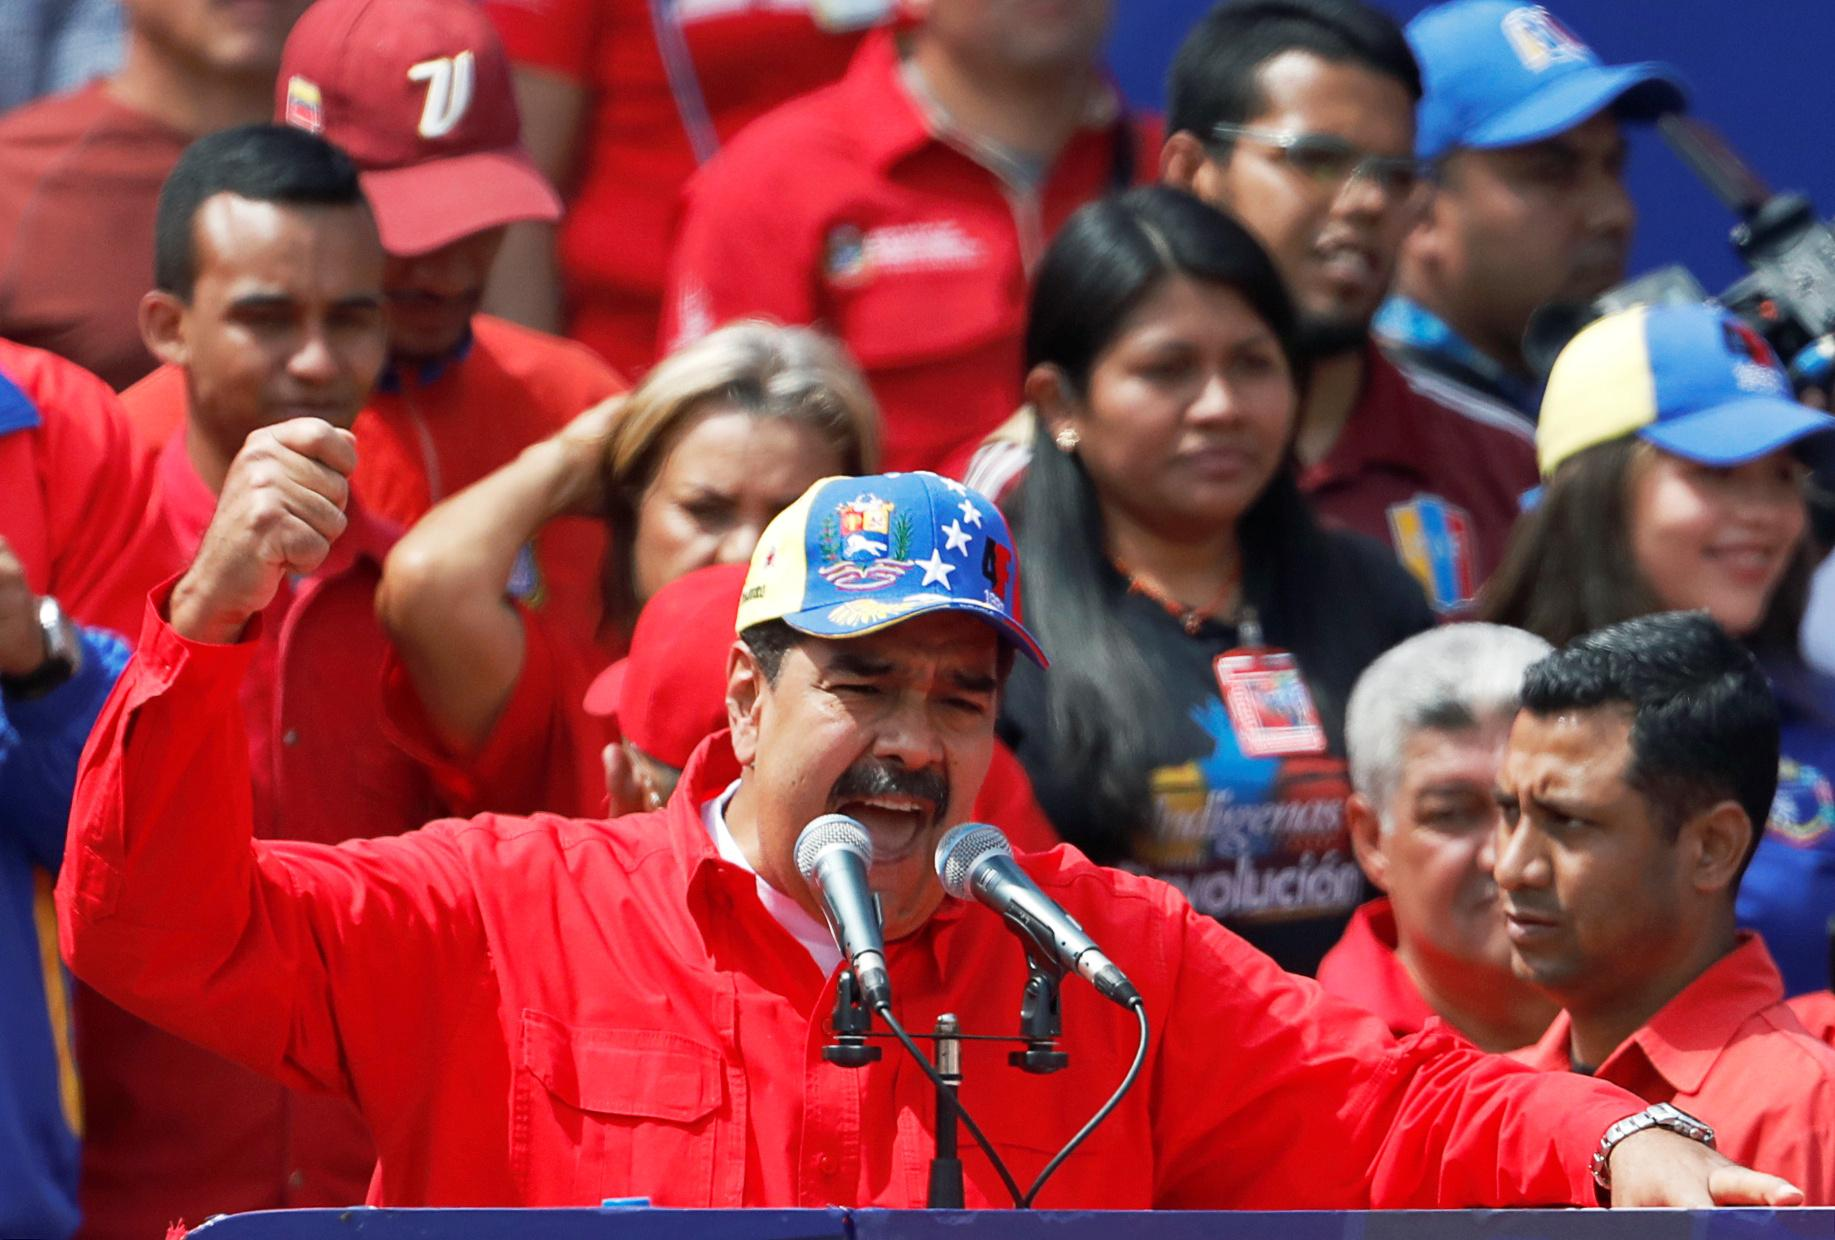 Venezuela's Maduro proposes earlier elections for National Assembly